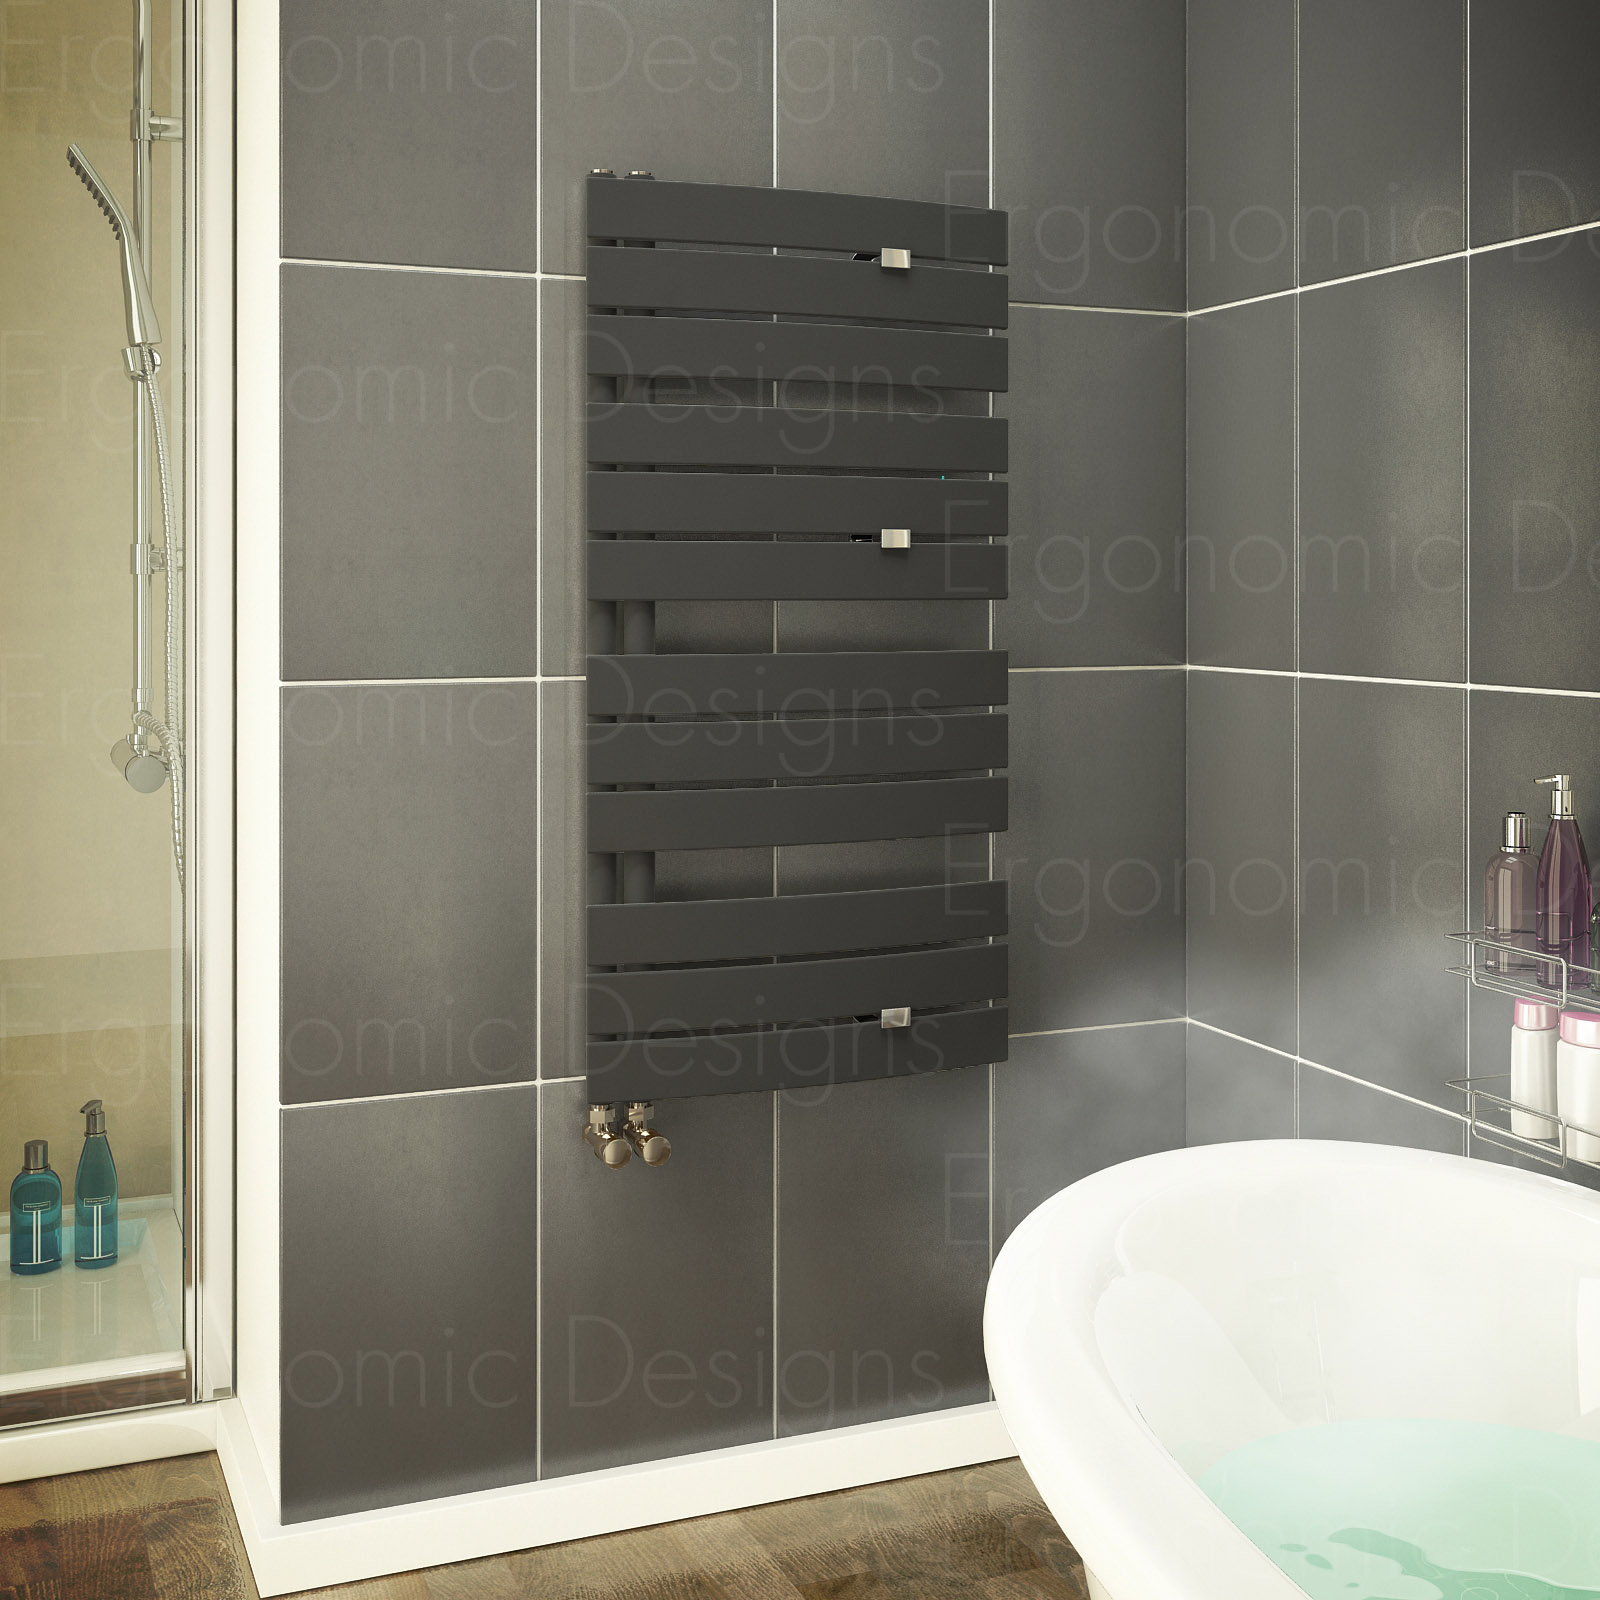 Anthracite 1080 X 550 Mm Flat Panel Bathroom Designer Towel Rail Radiator Ebay